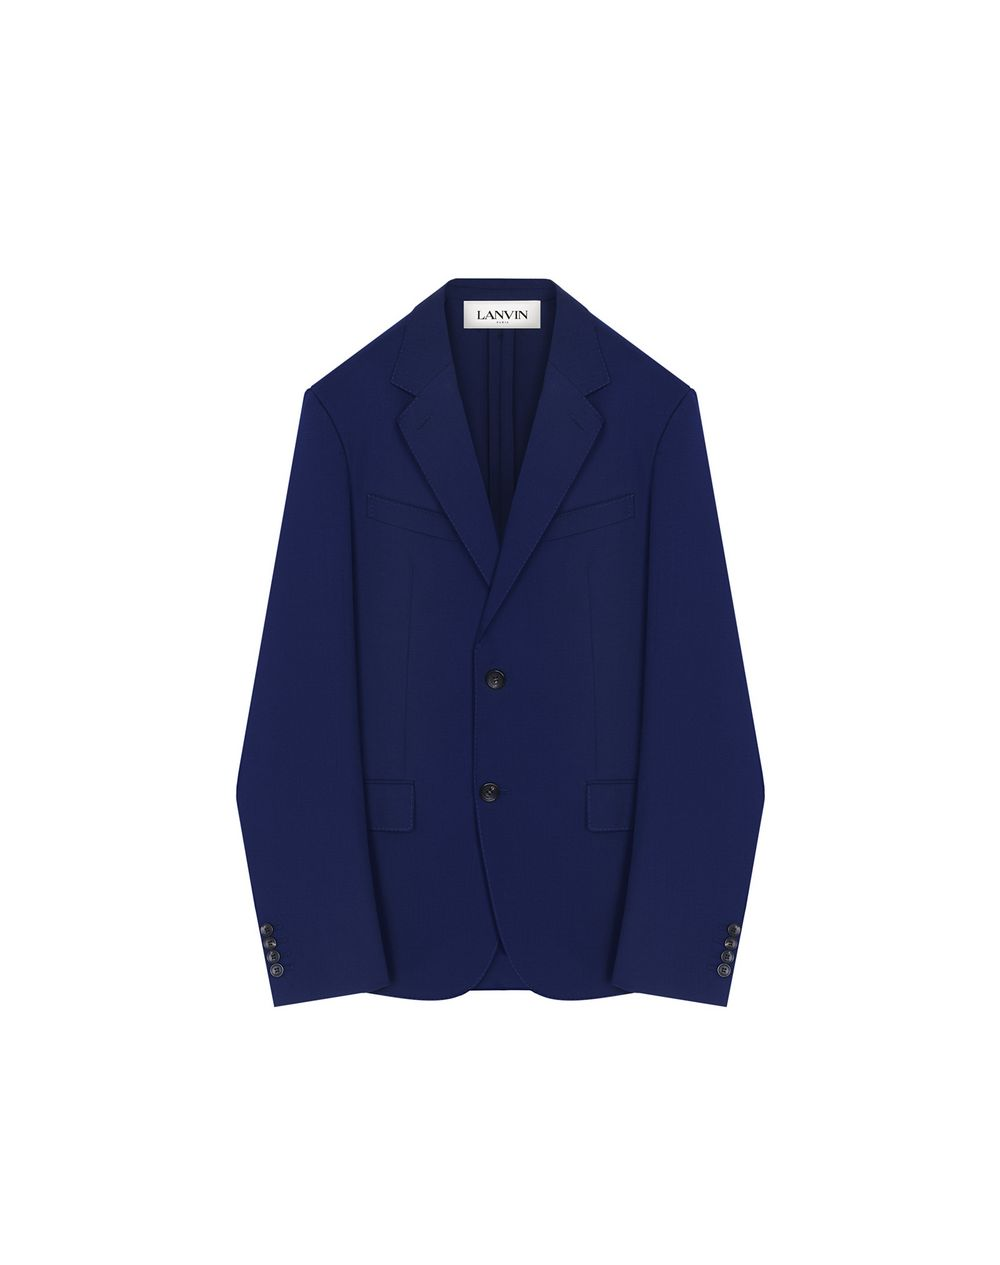 LIGHT EVENING JACKET IN WOOL AND MOHAIR - Lanvin